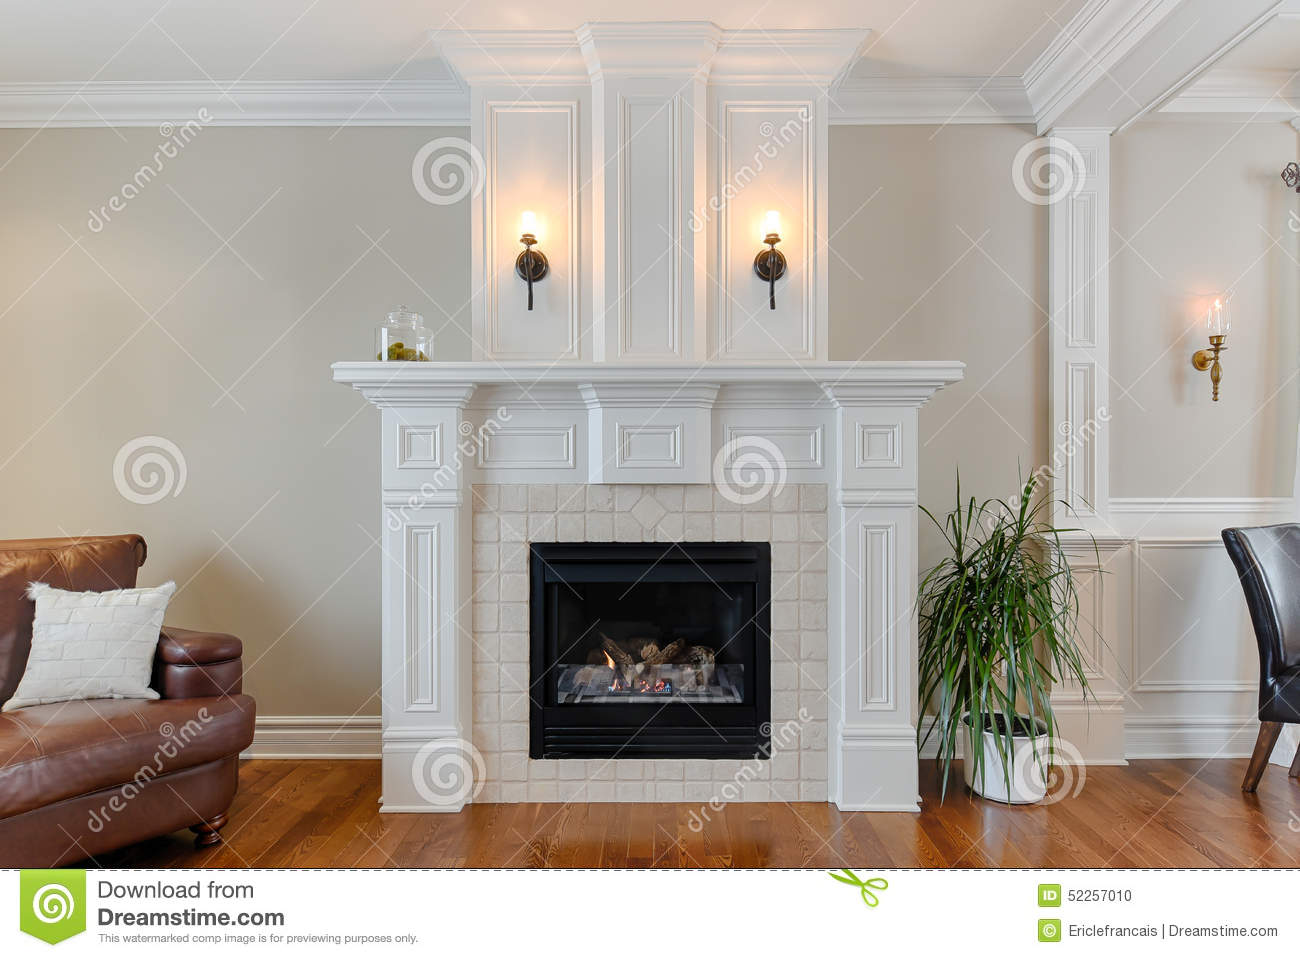 Home fireplace woman put logs happy winter royalty free - Chimeneas de adorno ...